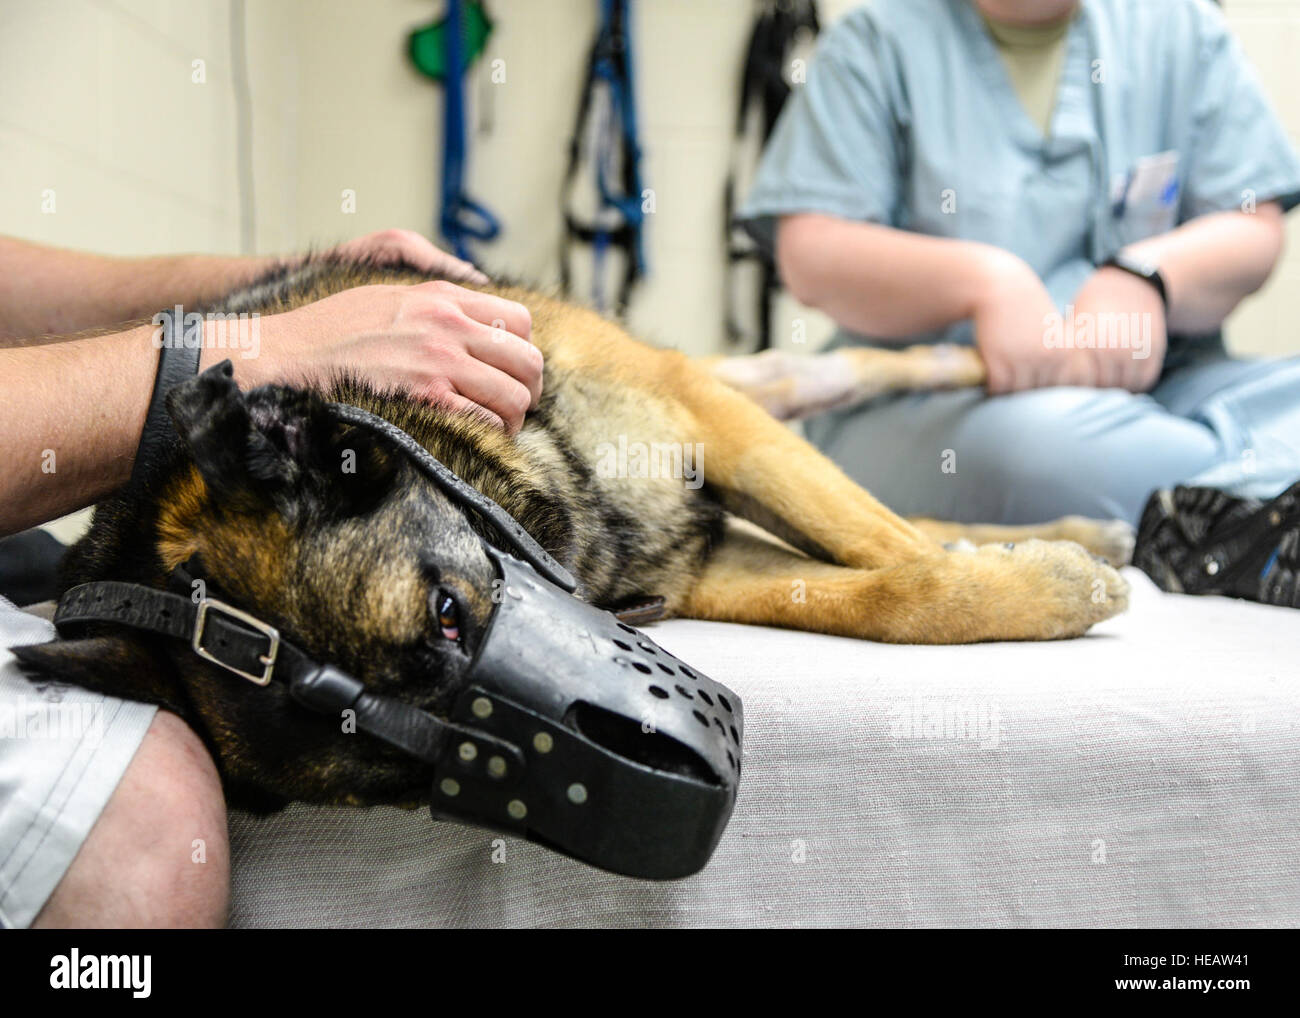 Military Working Dog SStash gets his injured leg examined prior to having his new outfitted leg brace put on at - Stock Image